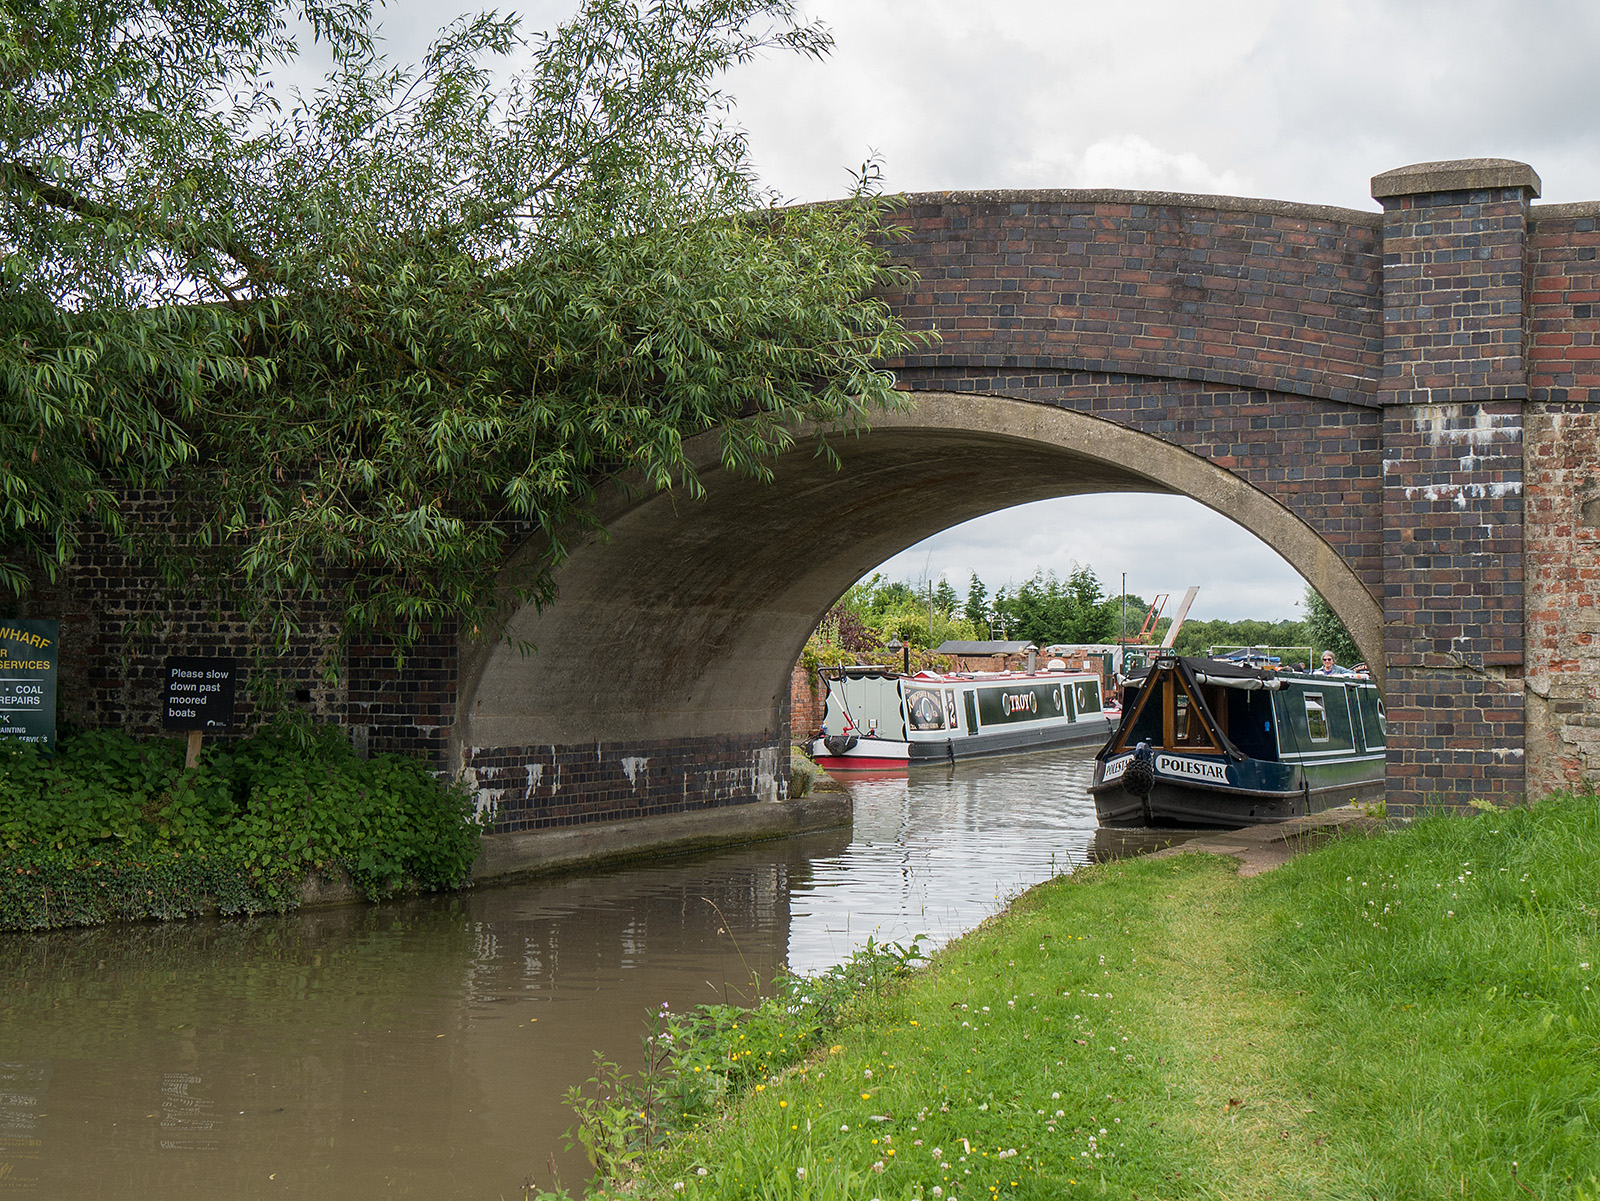 Bridge 60 and the approach to Yardley wharf